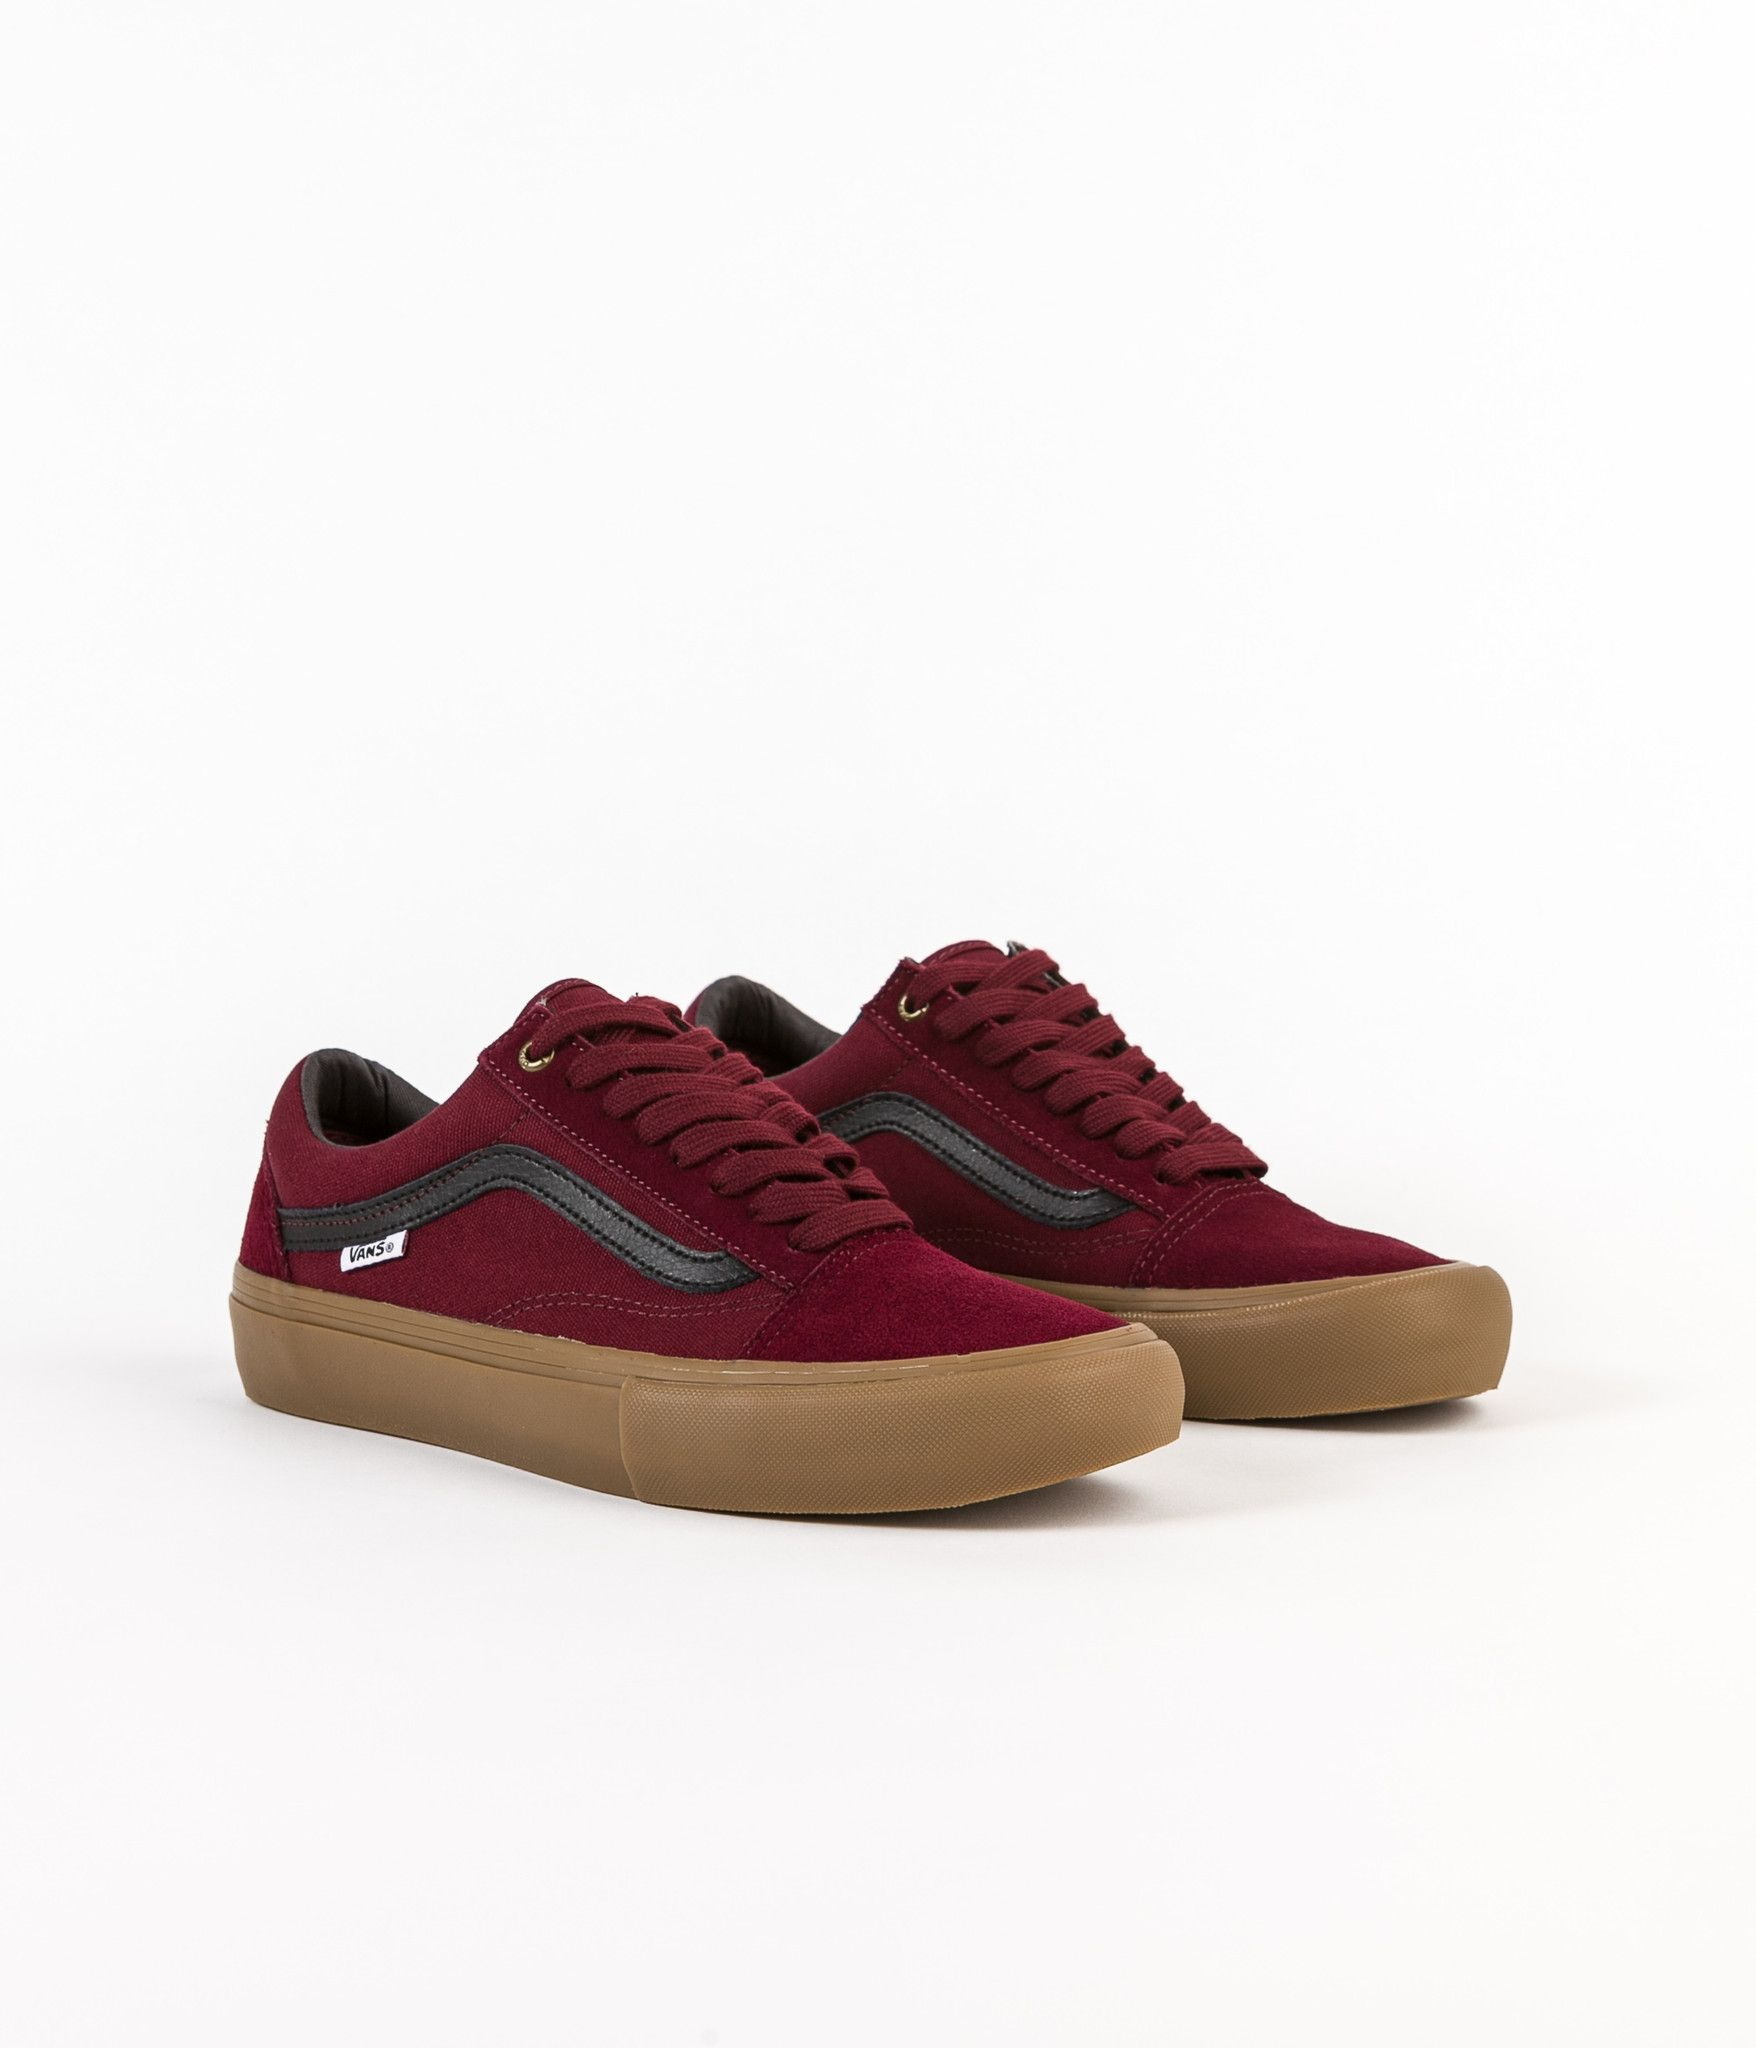 Vans Old Skool Pro Shoes - Port   Black   Gum  1199bcd9d